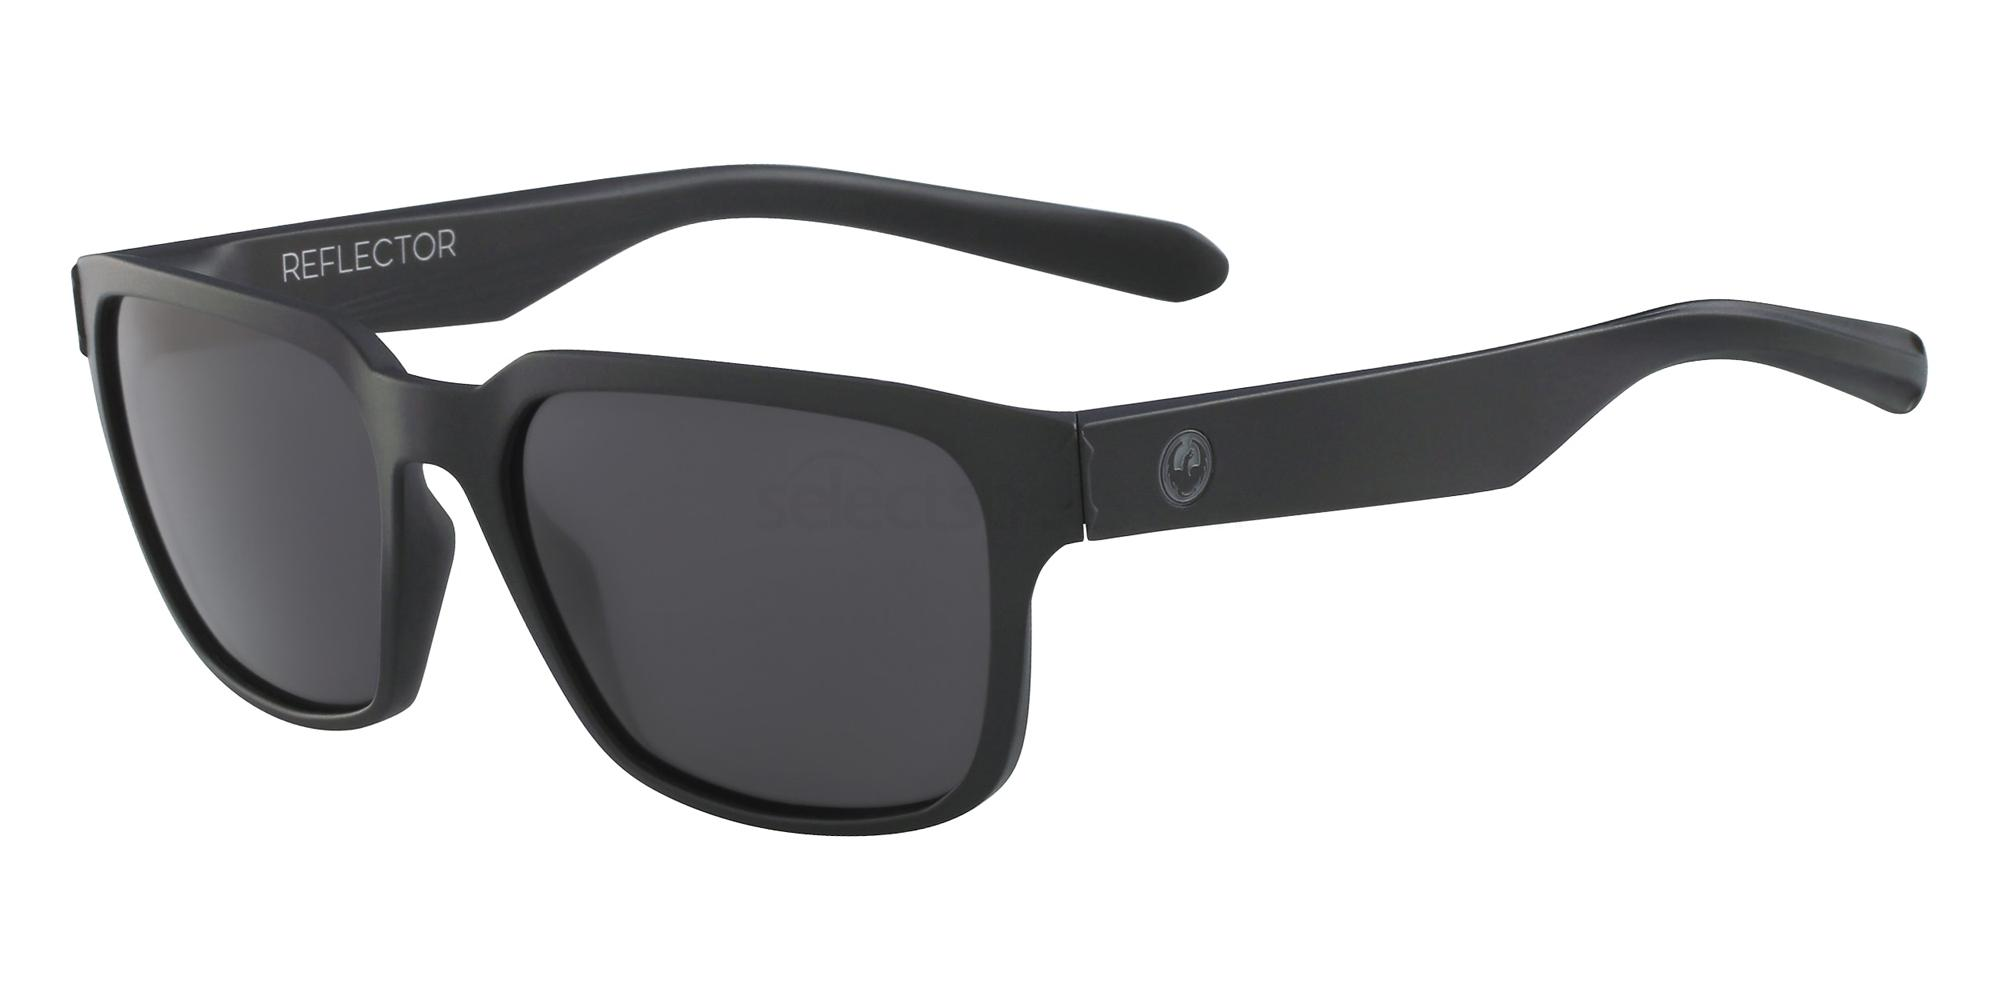 002 DR REFLECTOR Sunglasses, Dragon